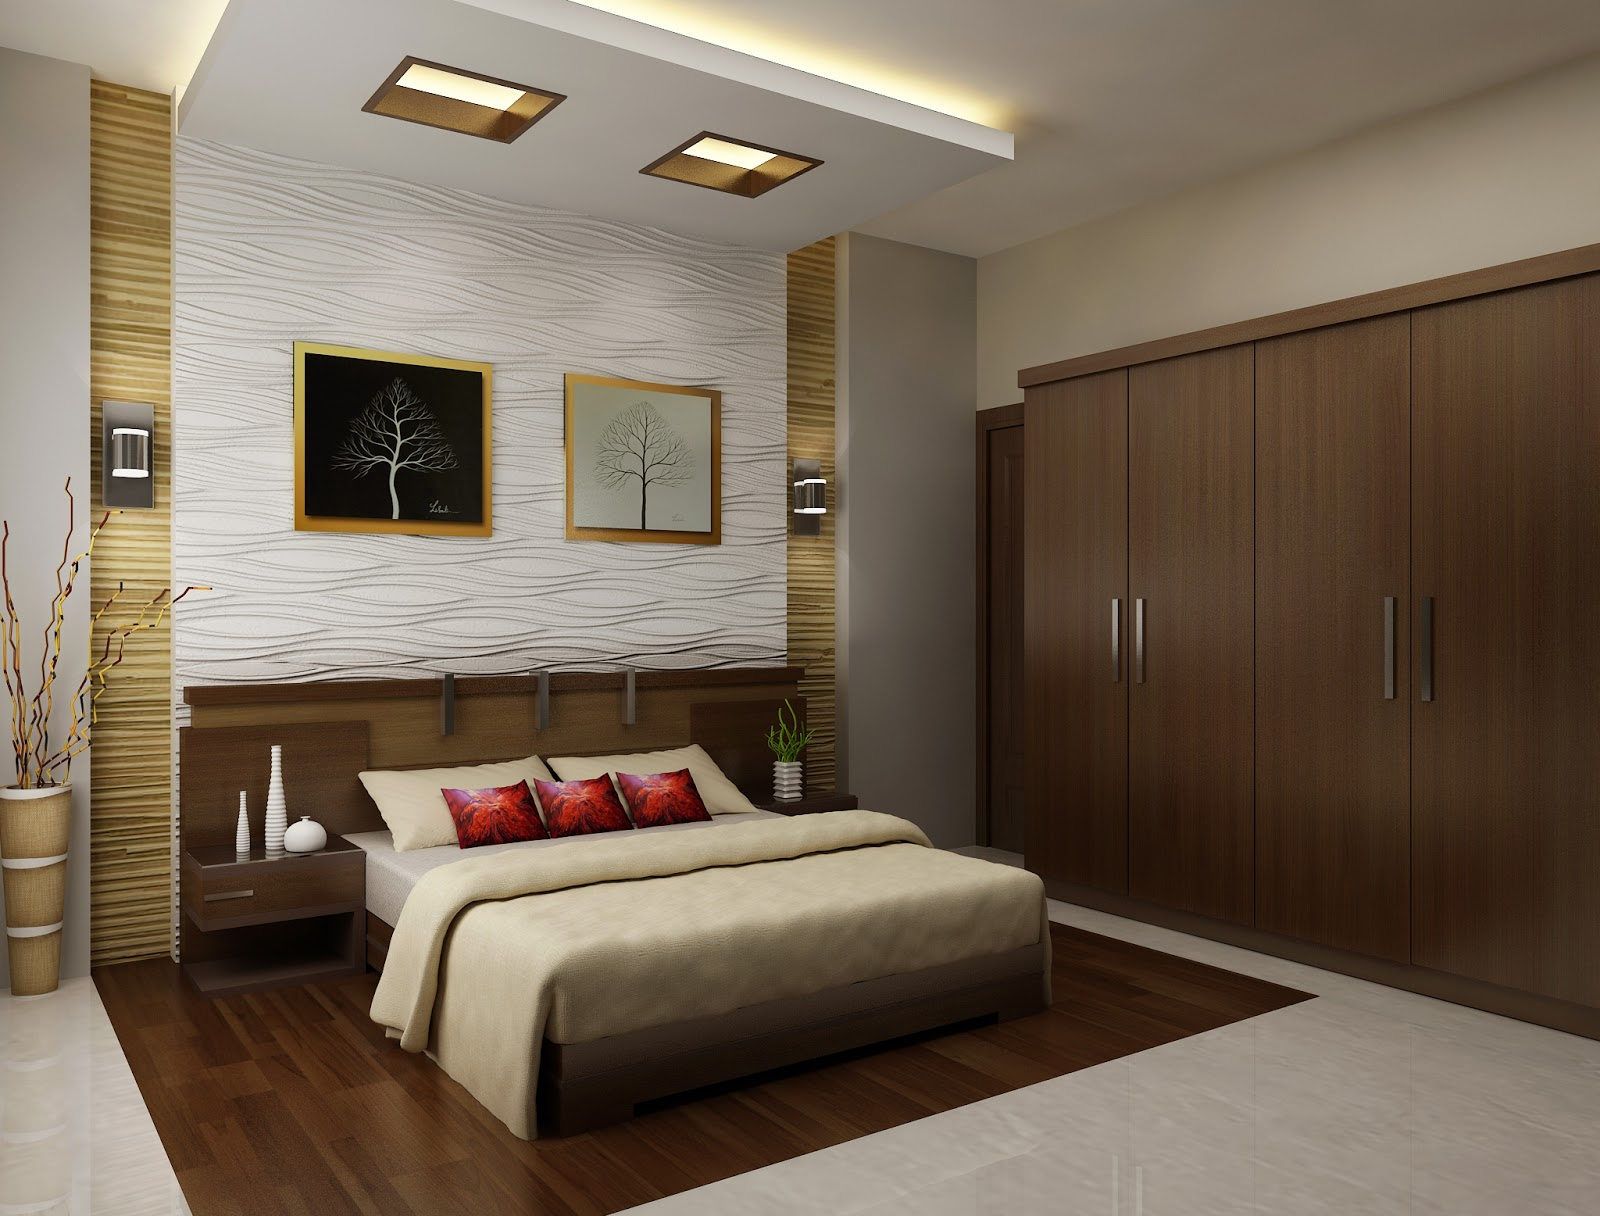 Home Interior Design Ideas India.  Interior Bedroom Design Dreams House